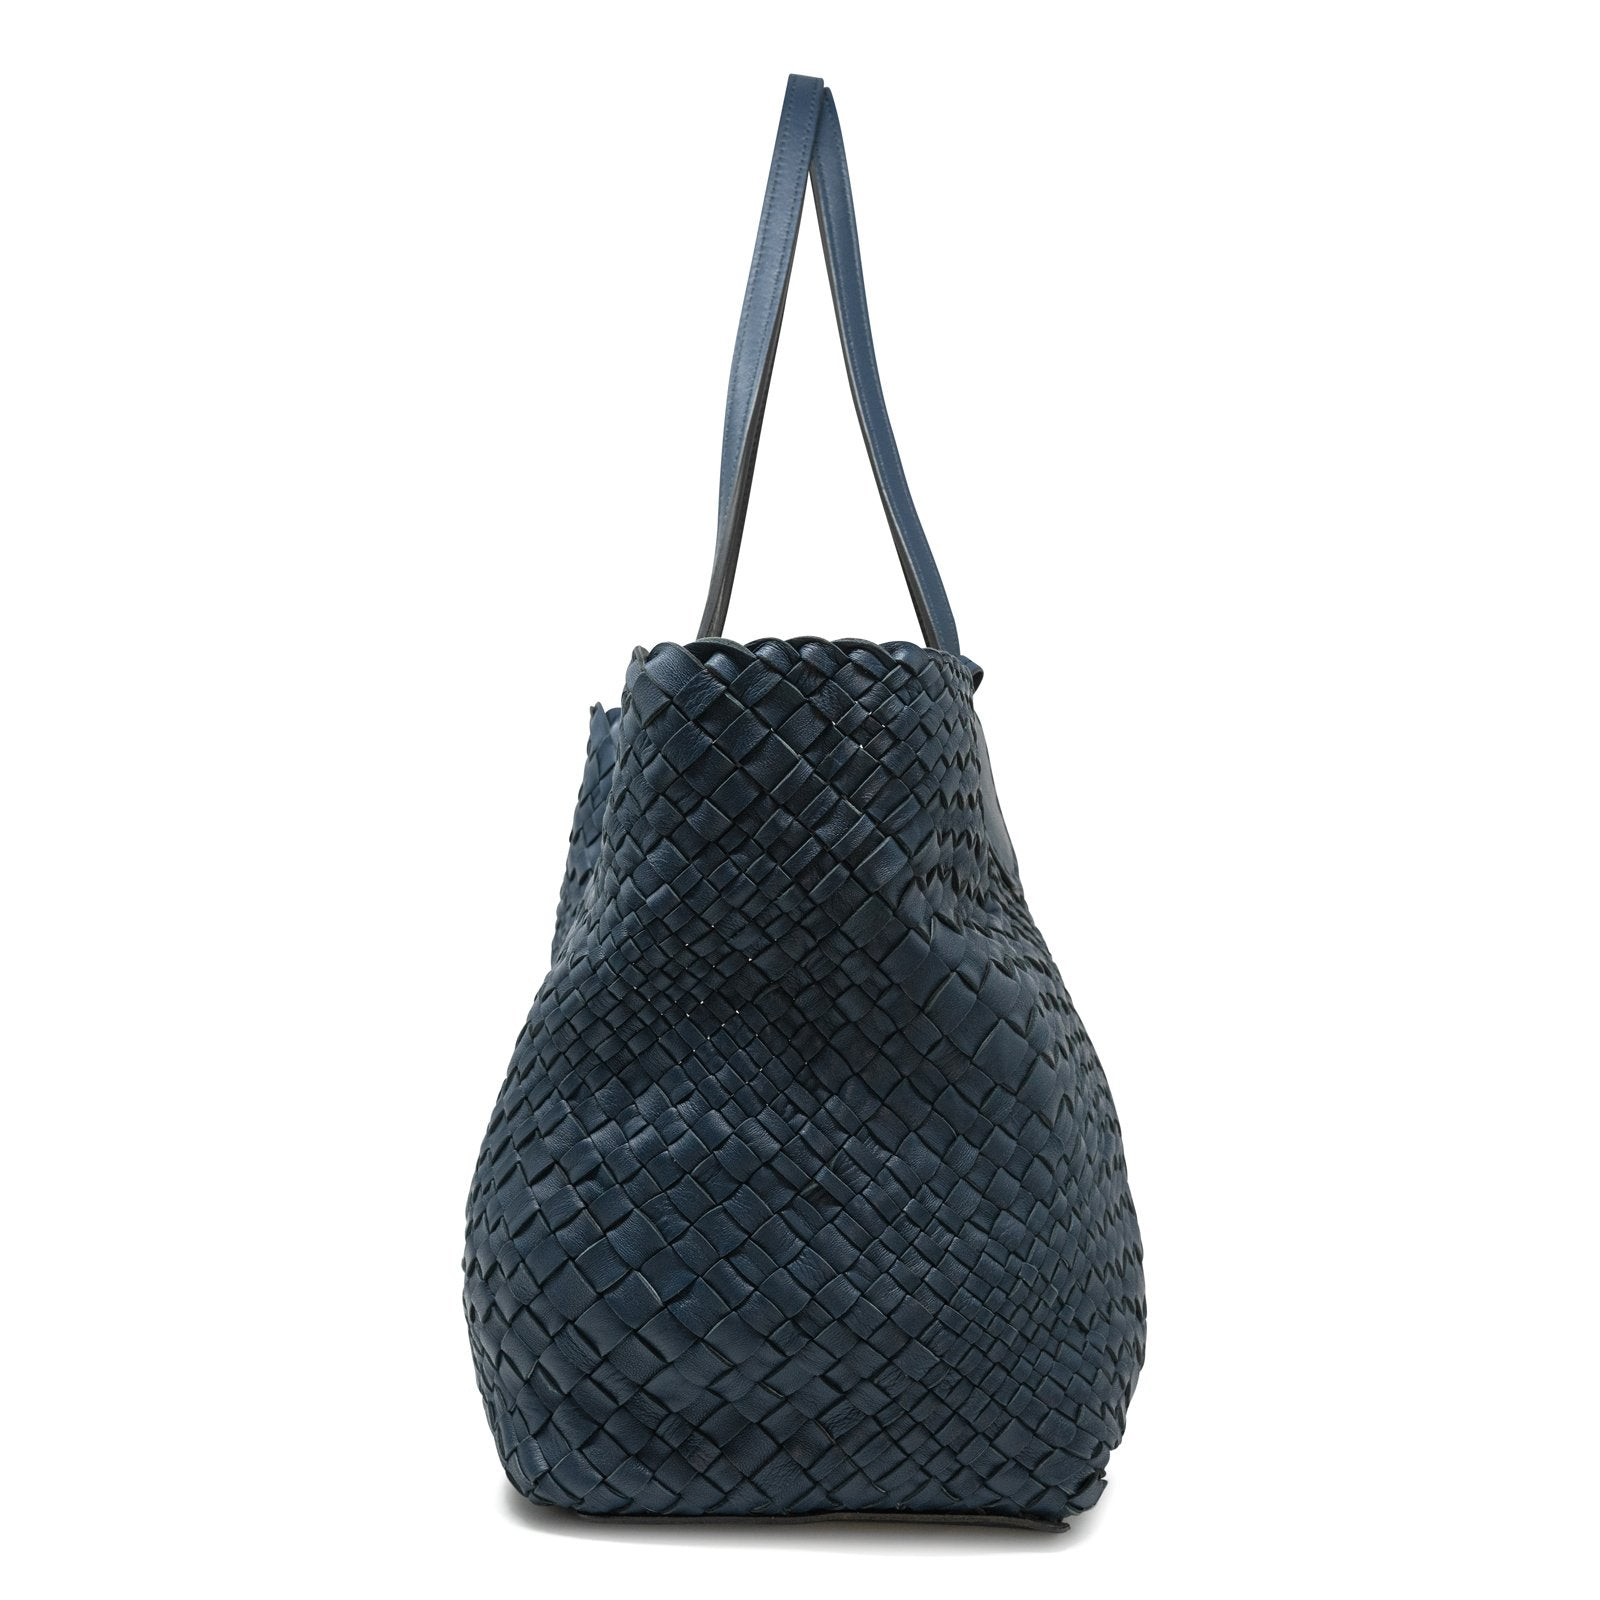 Women Intrecciato Optical Reversible Shopping Bag in Black and Blue - Jennifer Tattanelli